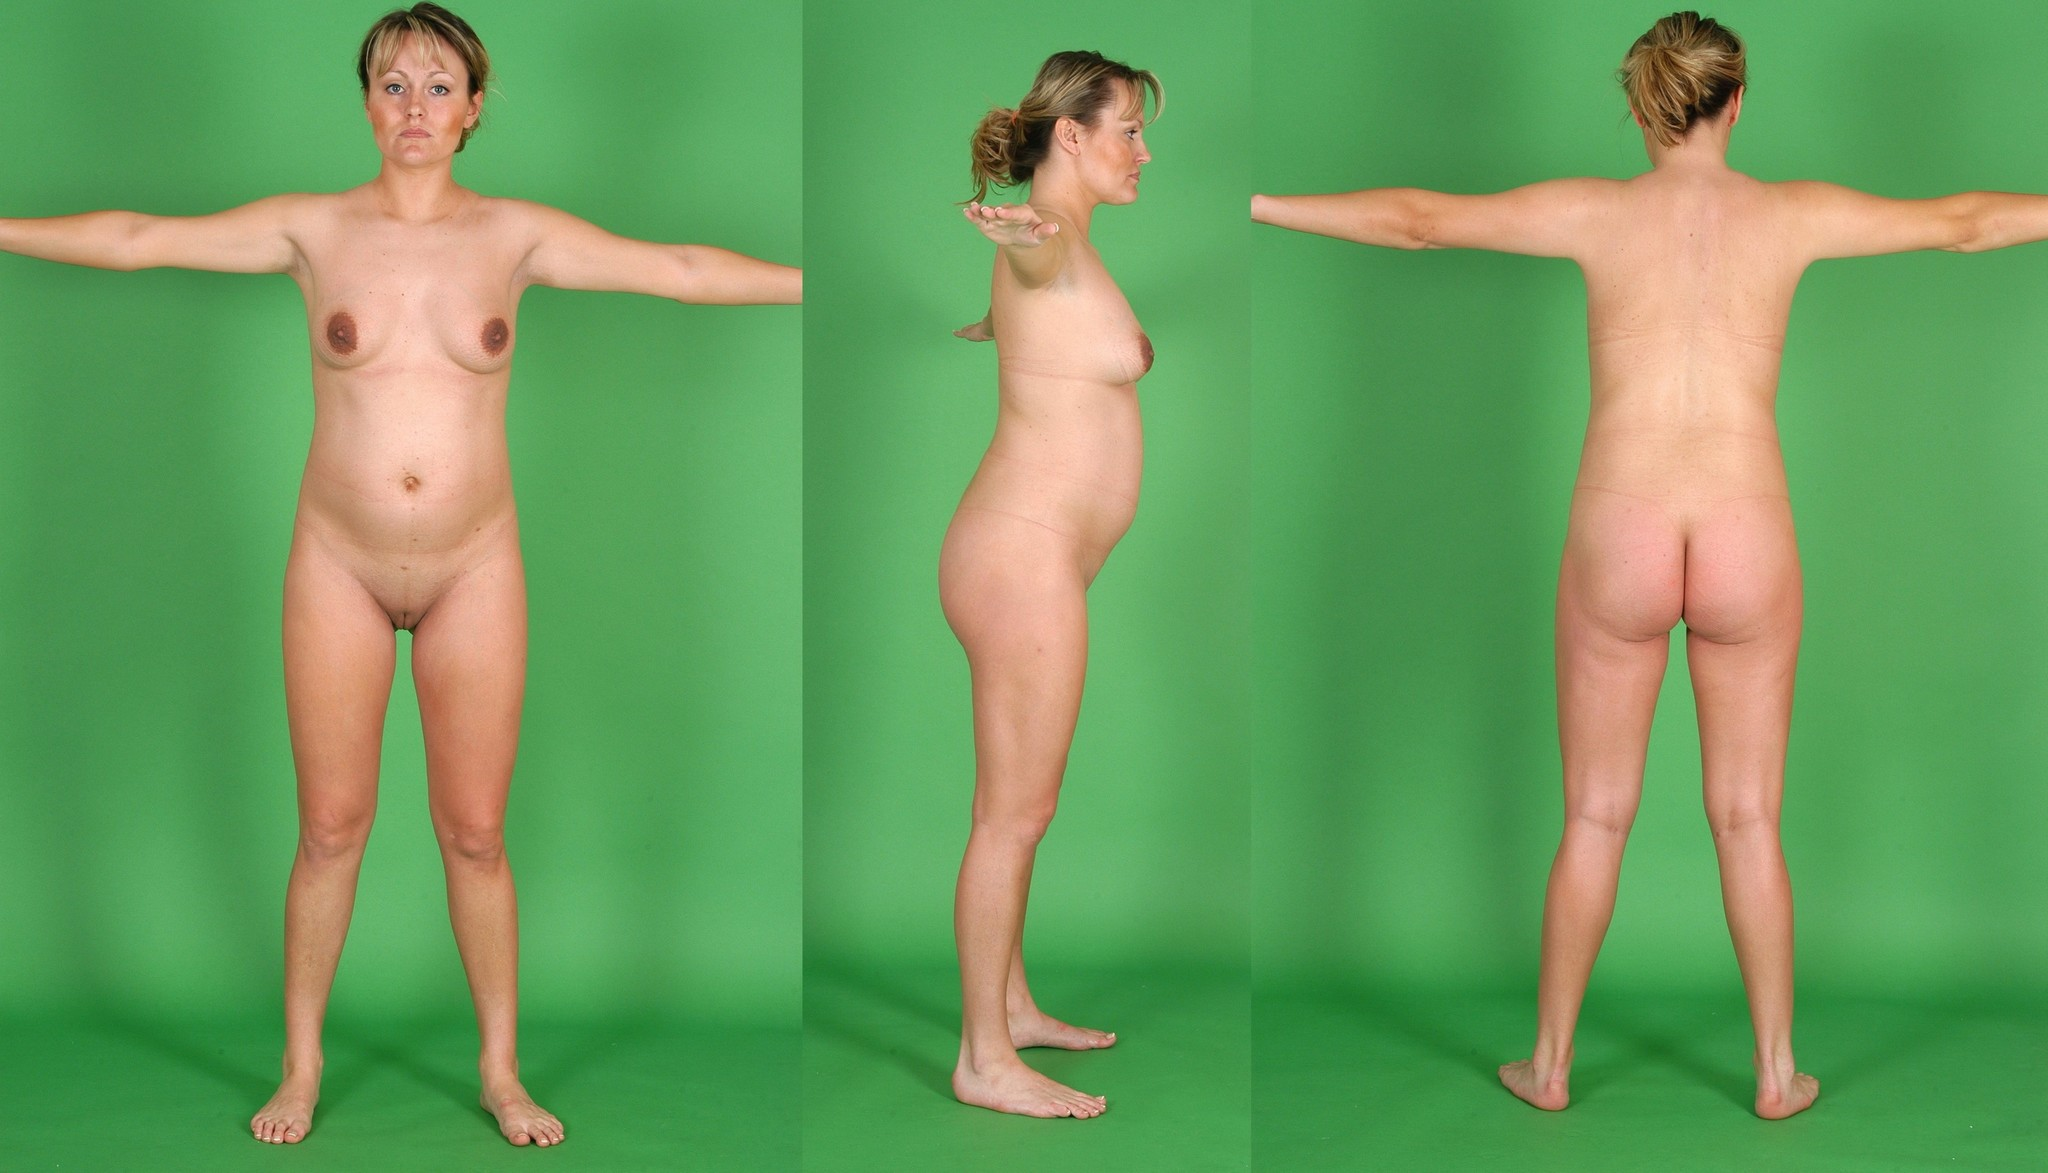 Nude models with primordal dwarfism exploited clip